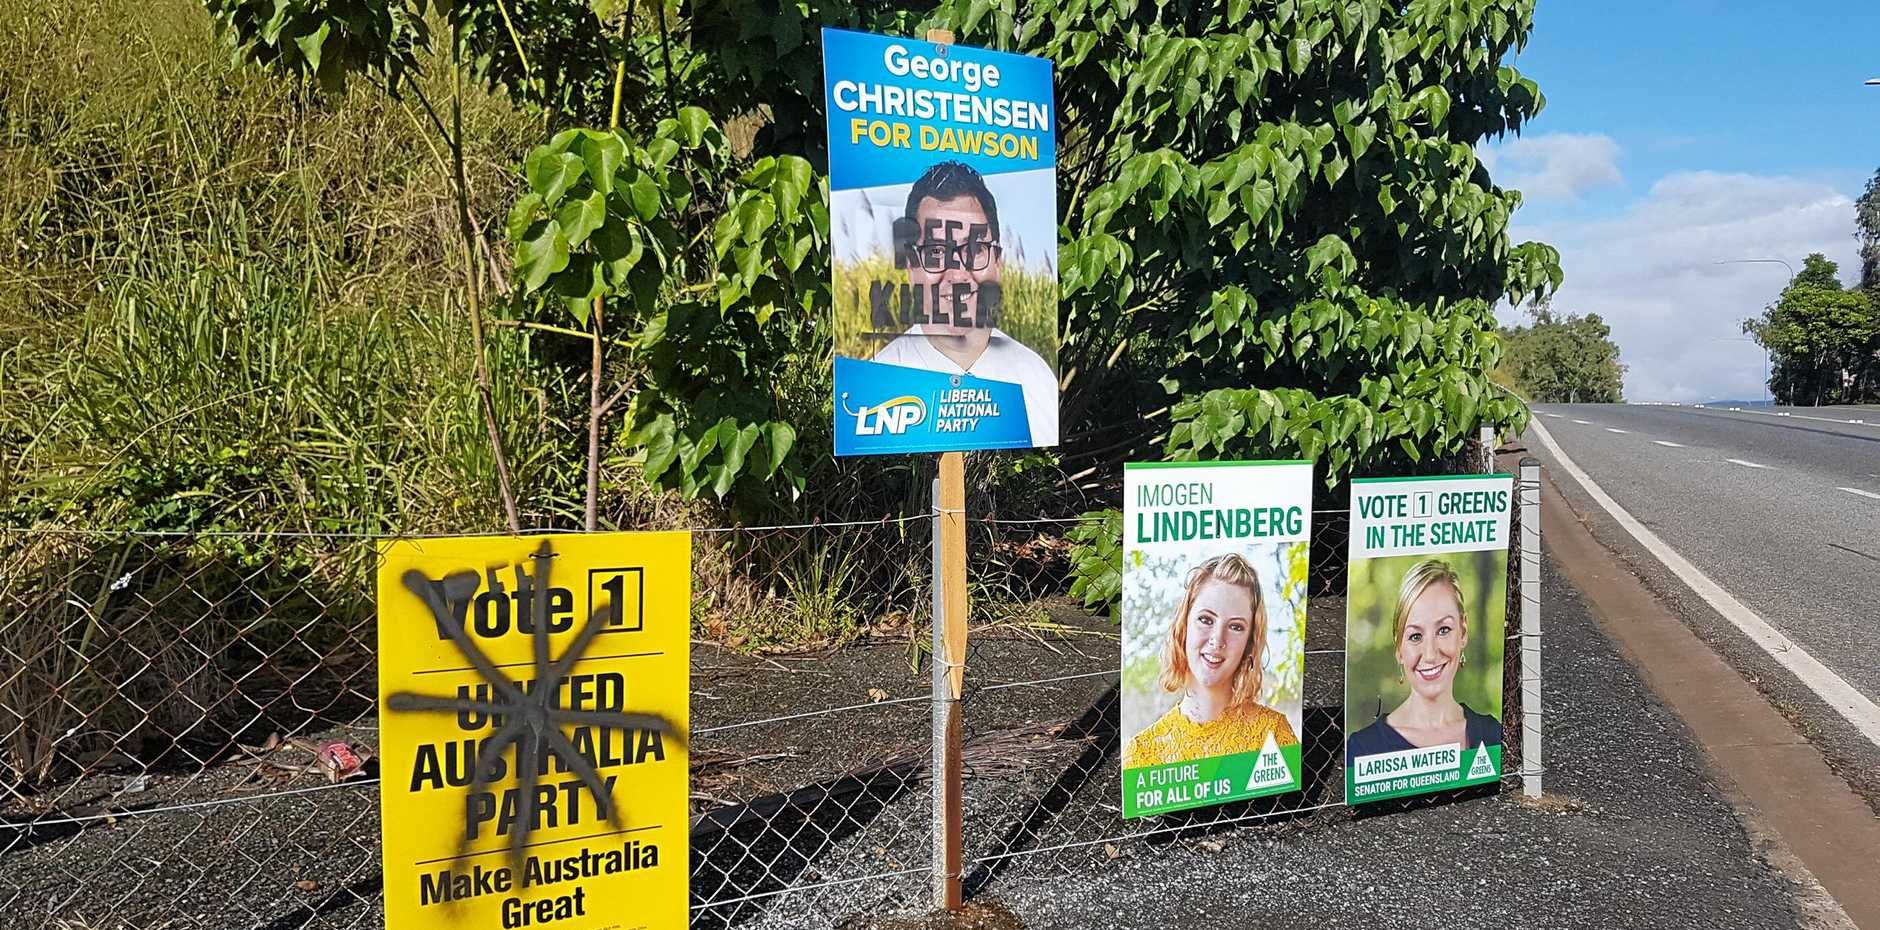 Dawson election candidate signs have been vandalised in Airlie Beach.